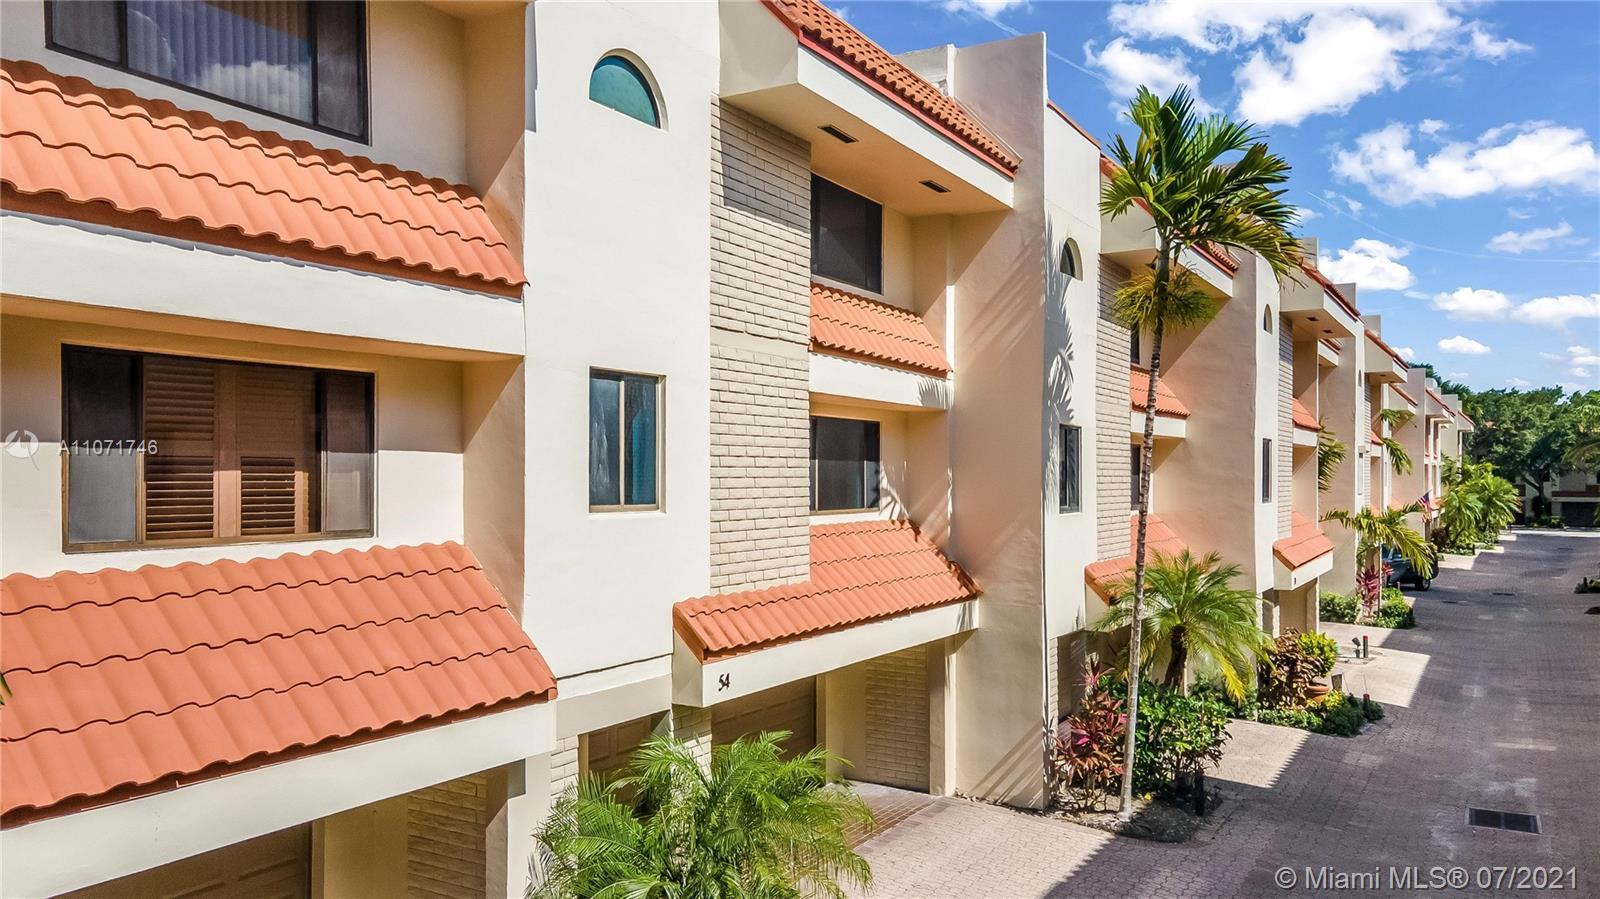 Highly desirable townhouse located in Fort Lauderdale's Victoria Park! Conveniently located by the b